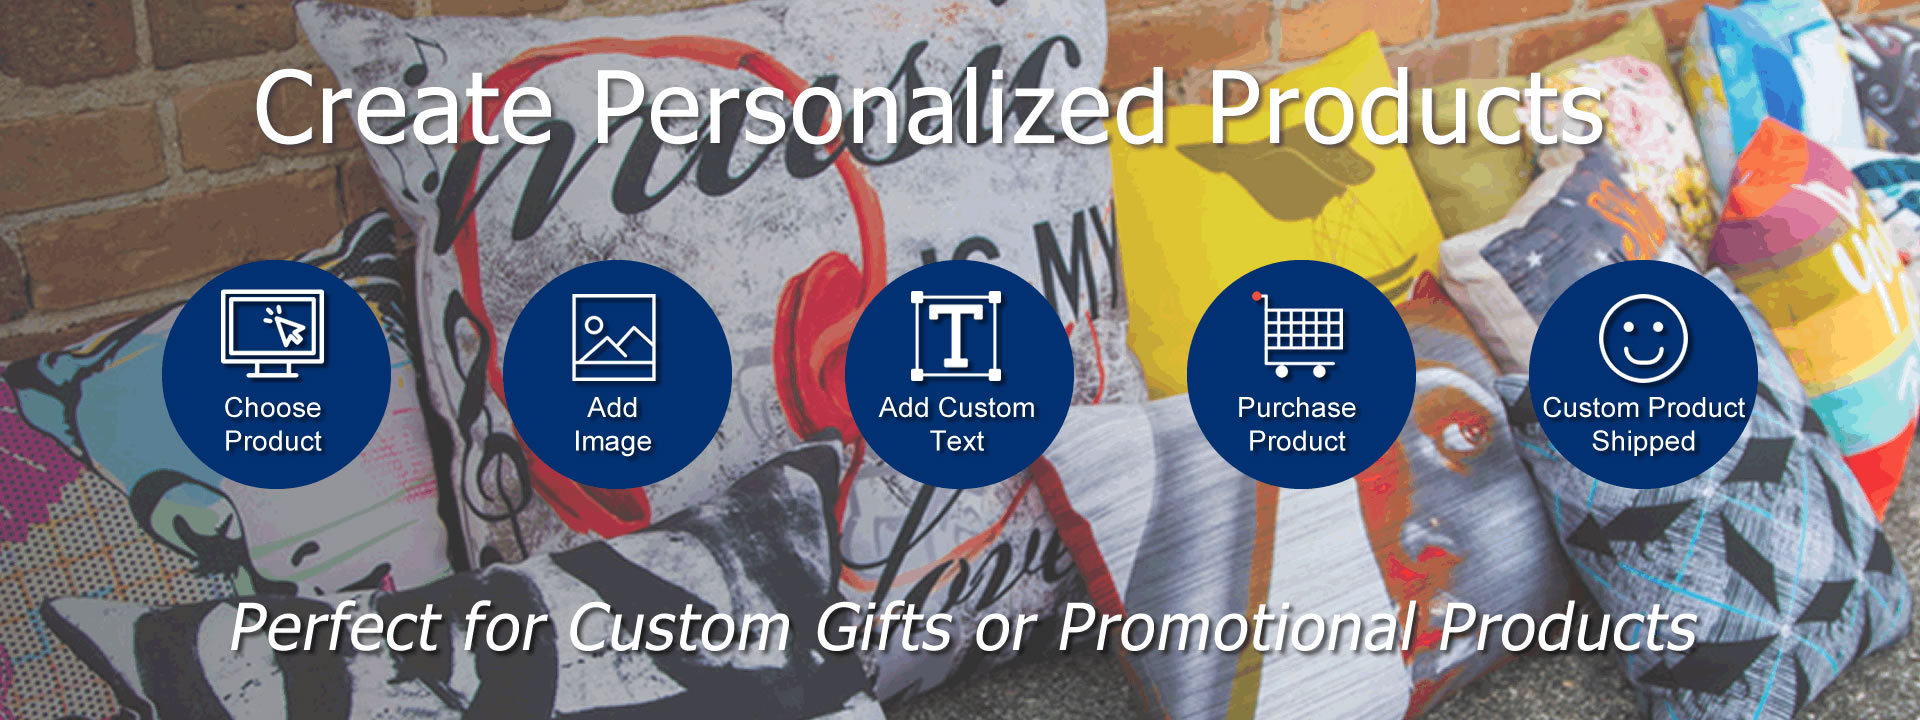 Create Personalized Products